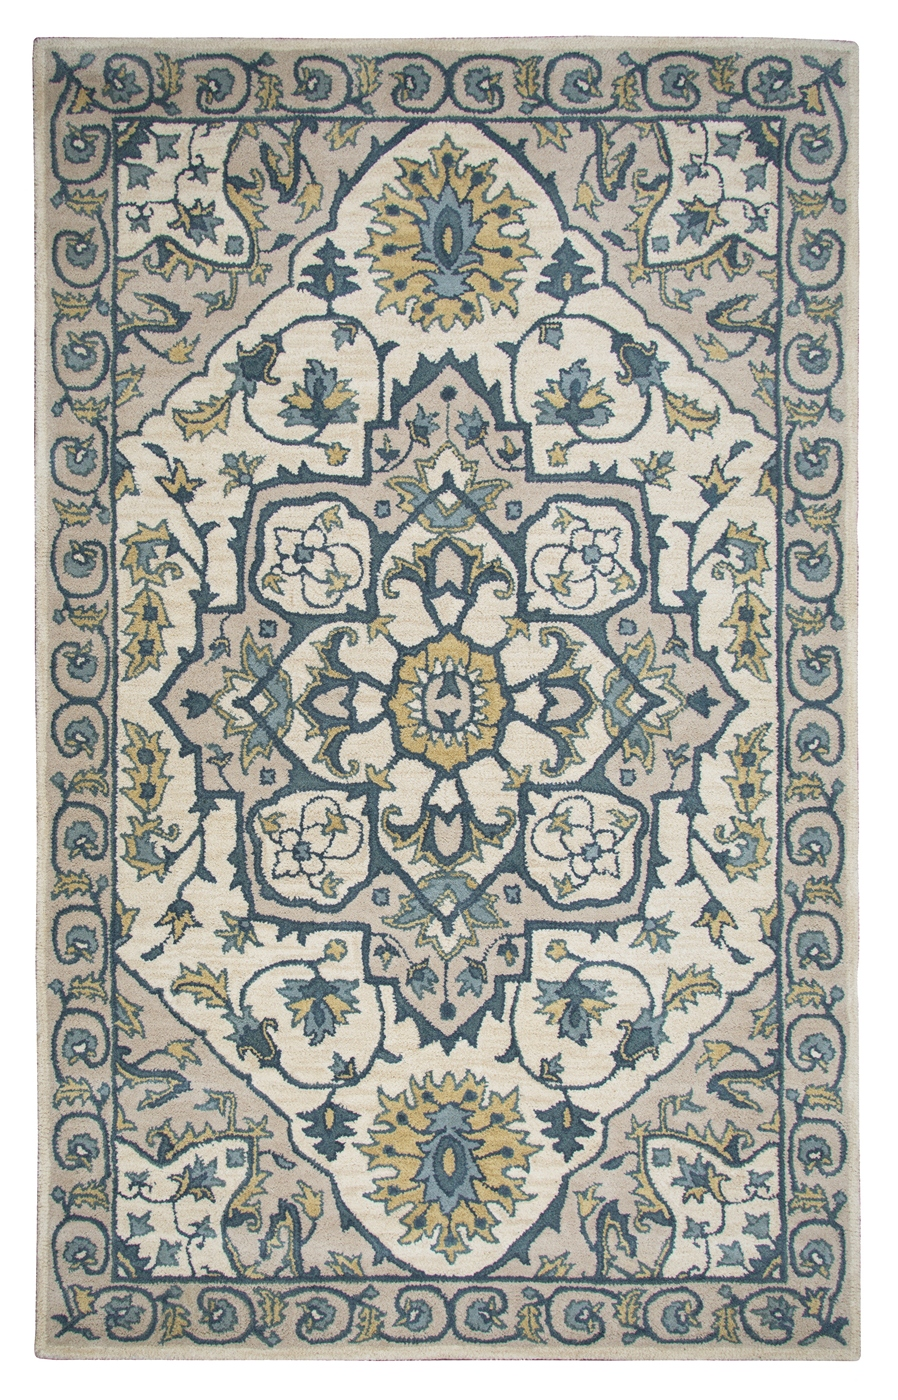 Valintino Ornamental Foliage Wool Area Rug In Ivory Yellow